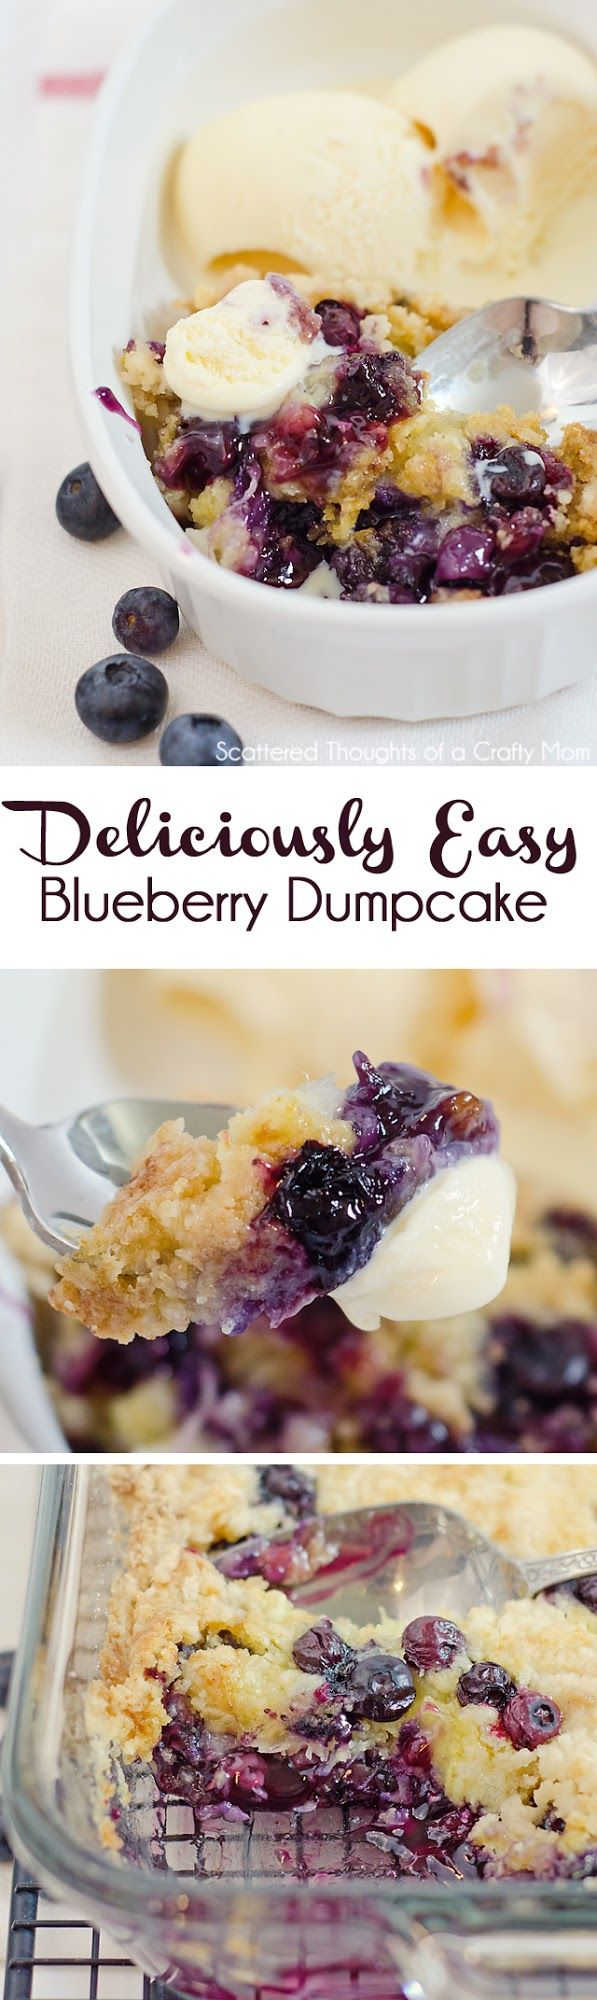 The most delicious Blueberry Dump Cake recipe ever!